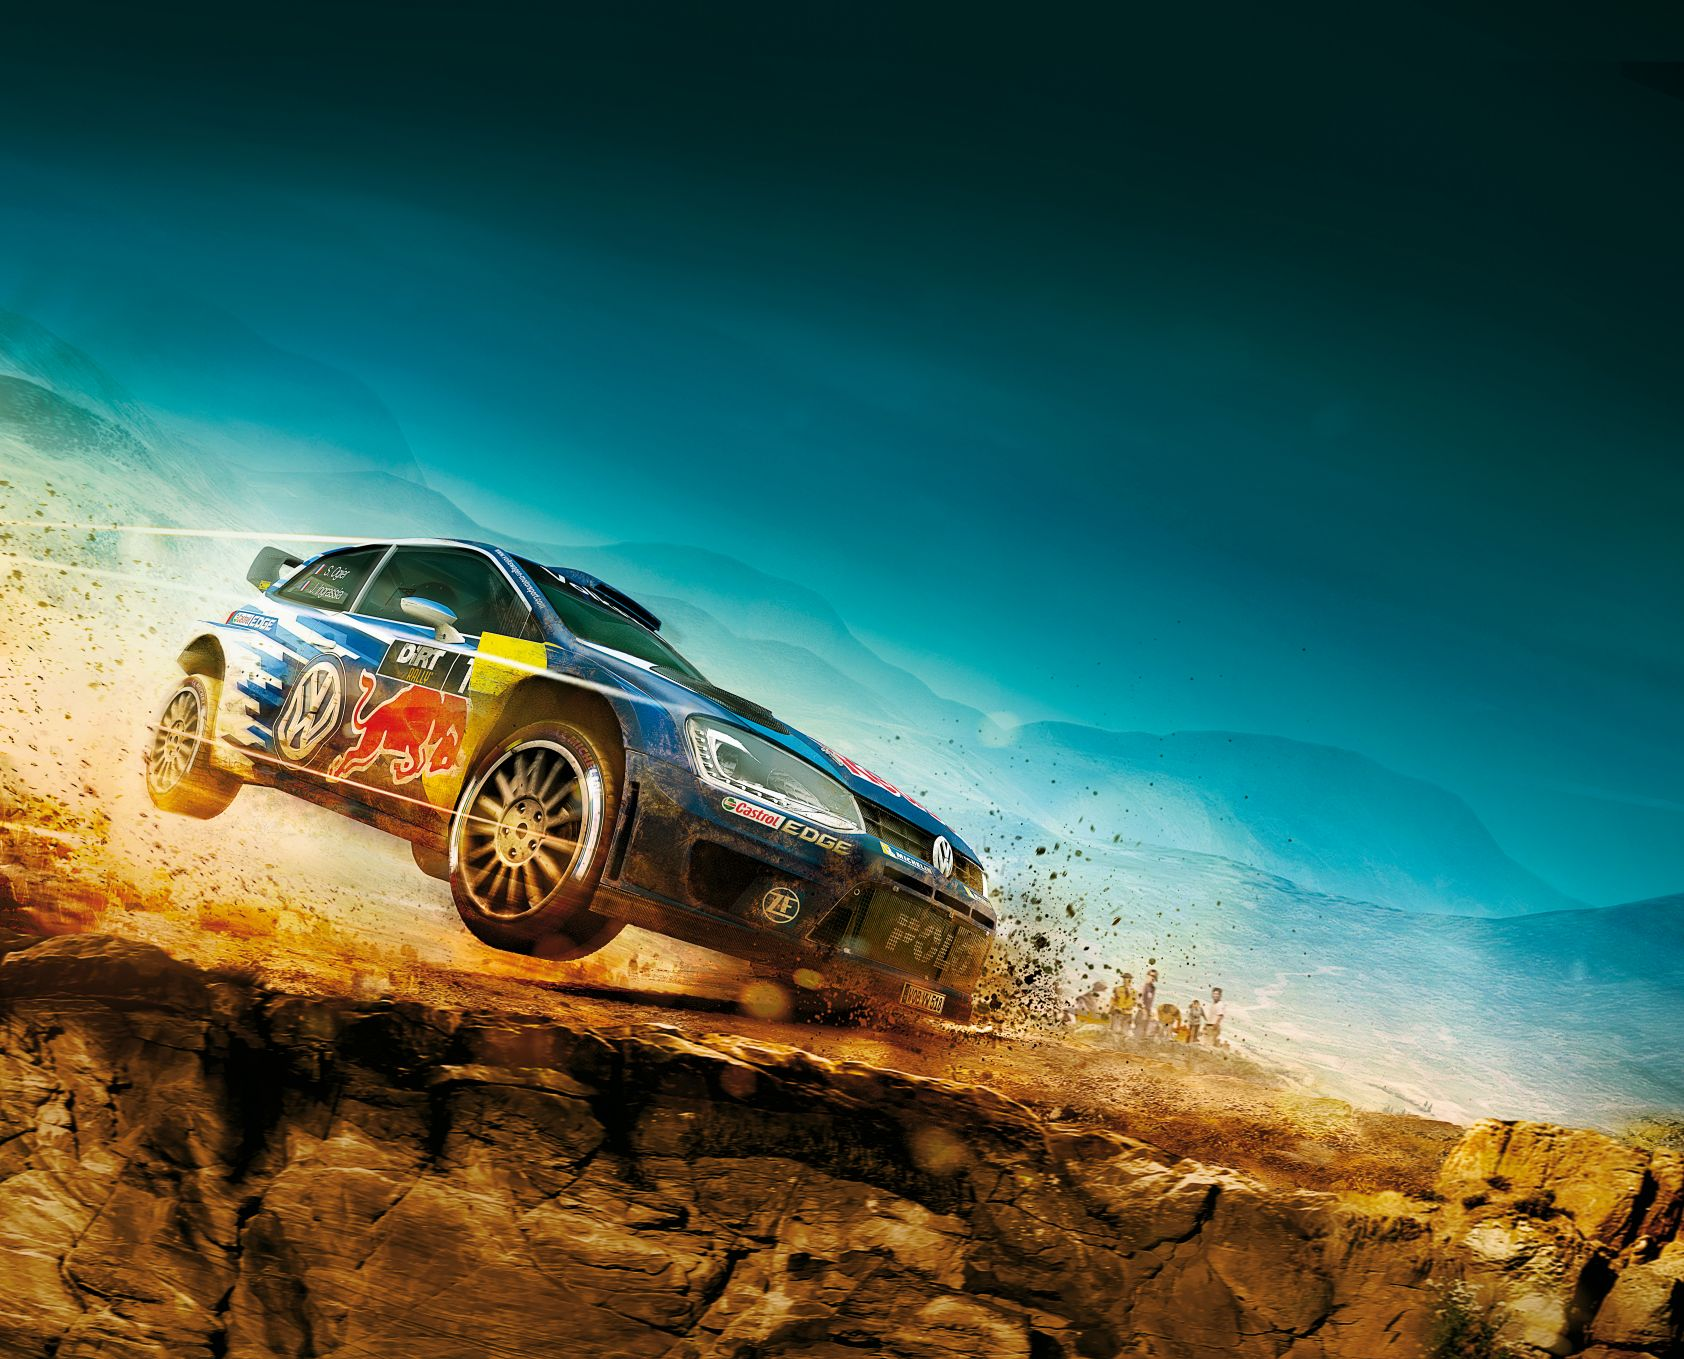 DiRT Rally PS4 review – the real rally simulator